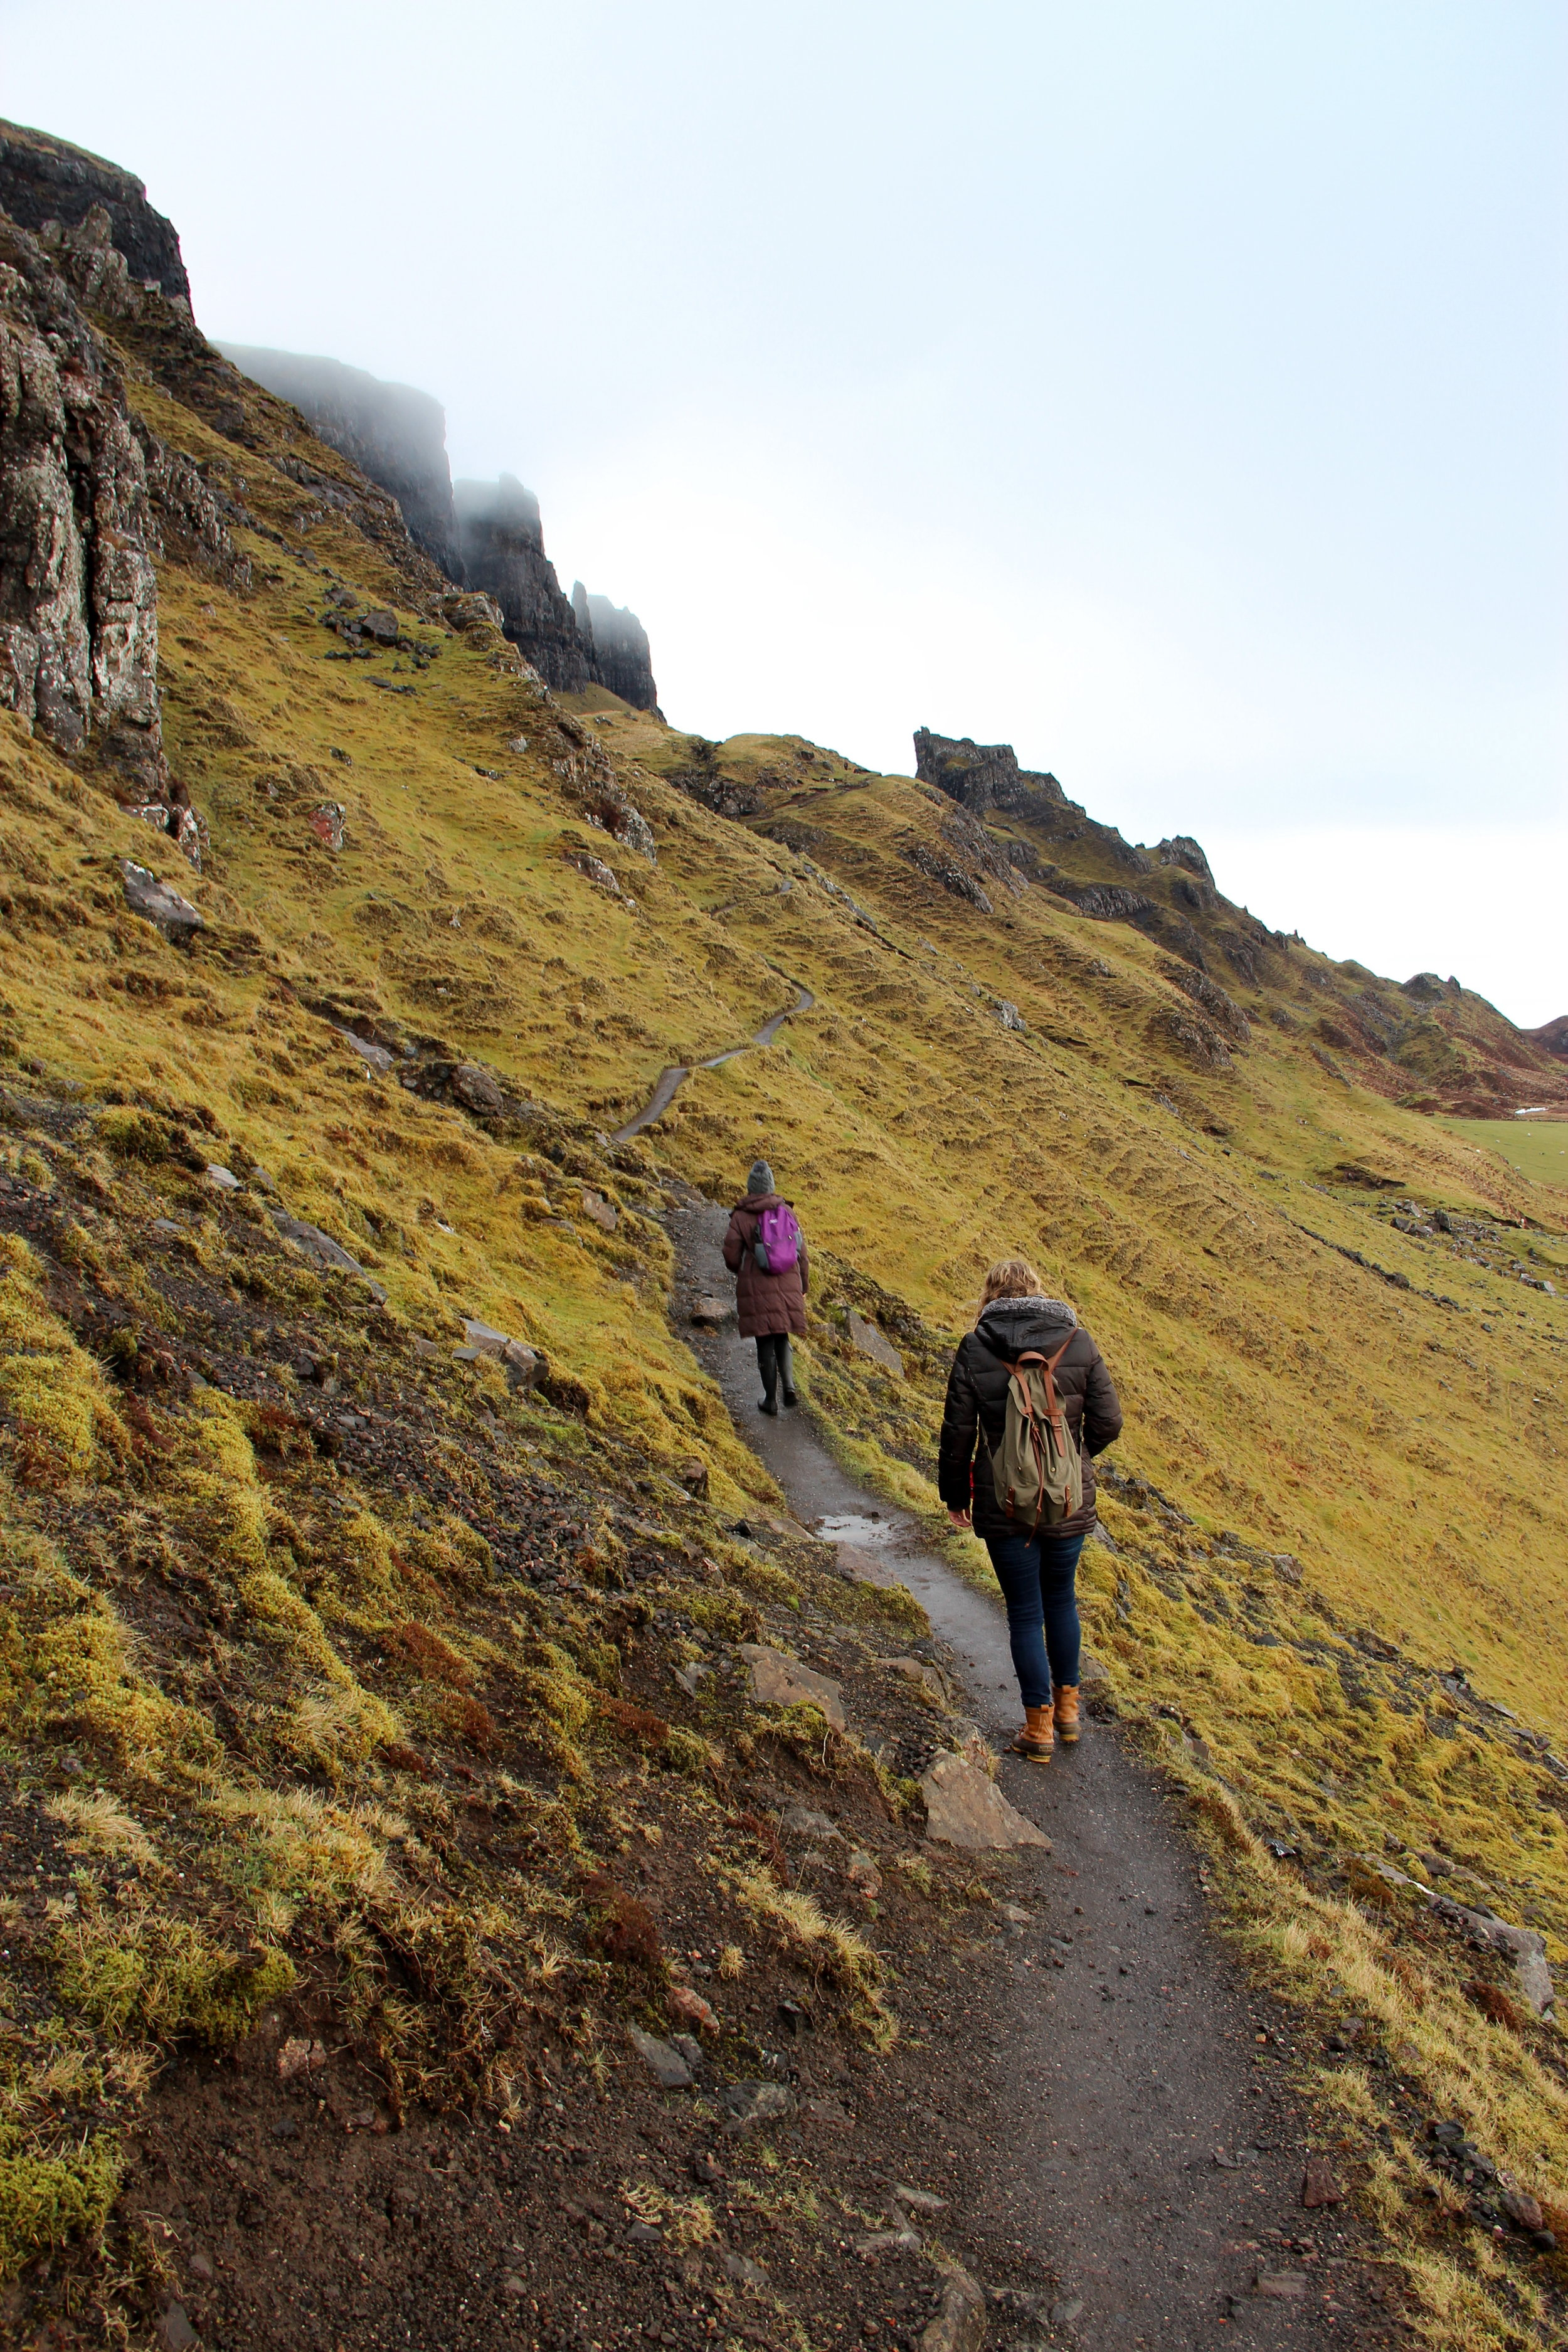 The Quiraing walking path at the beginning of our hike.